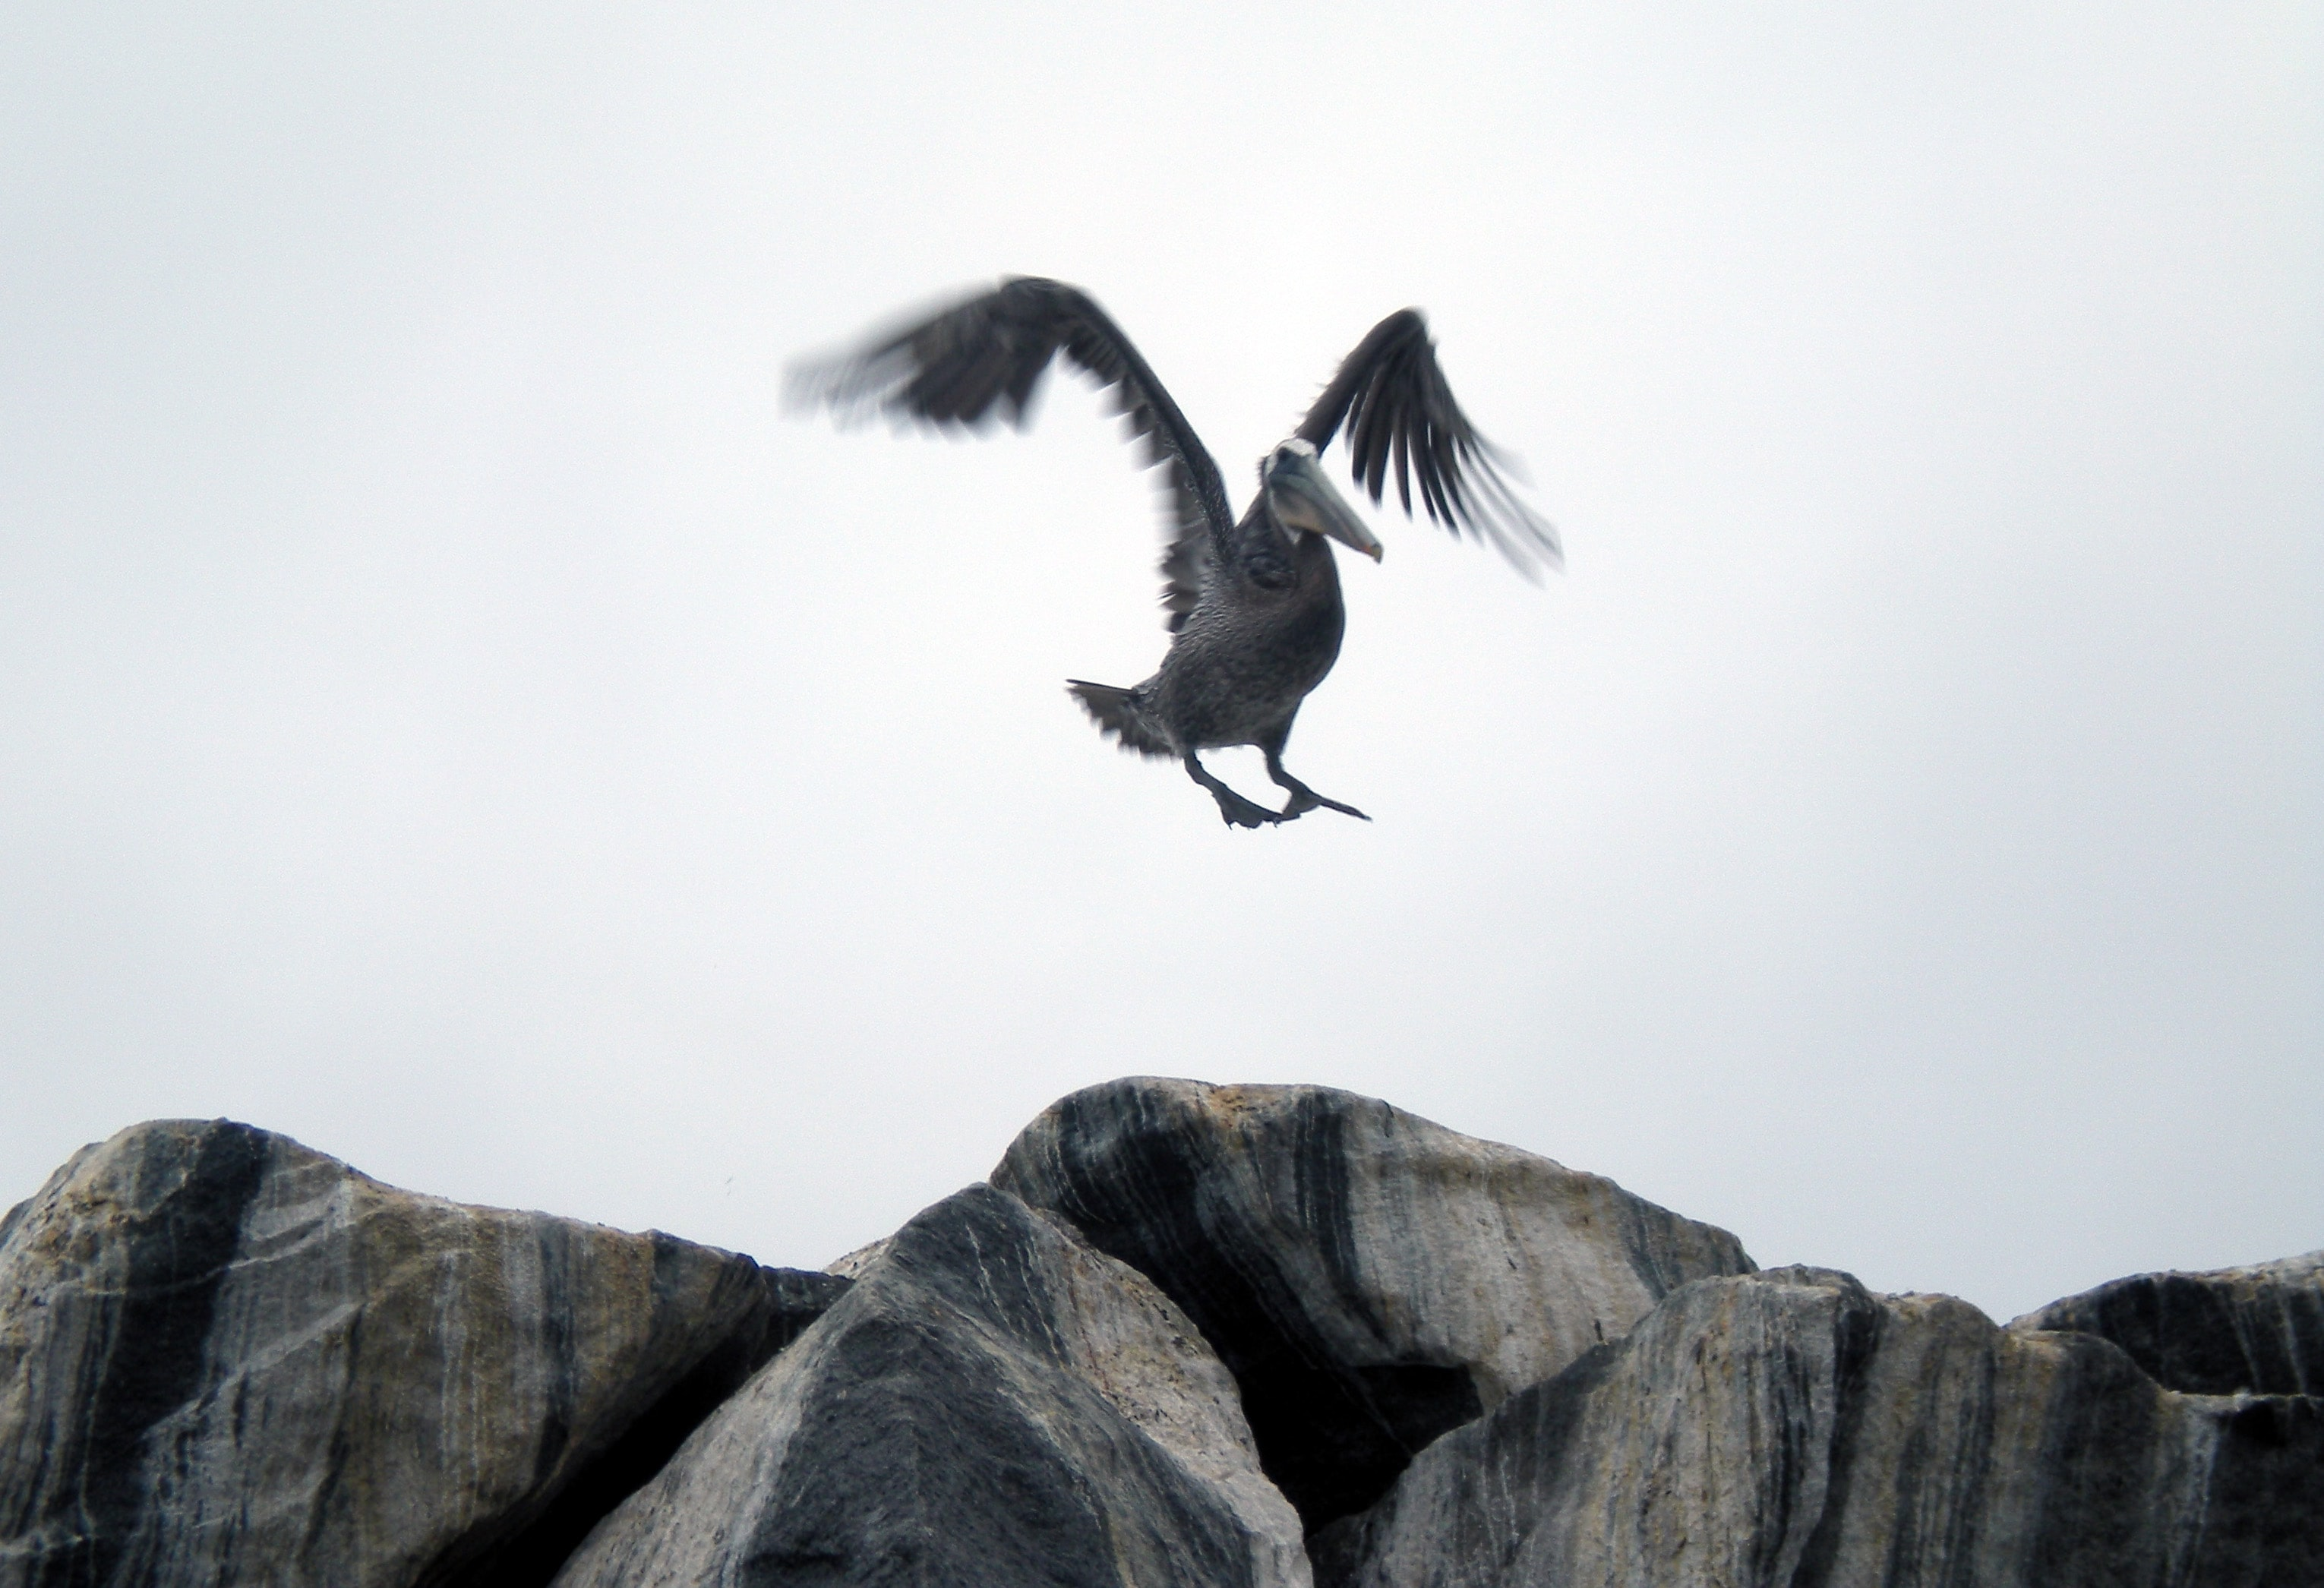 bird flying above rocks